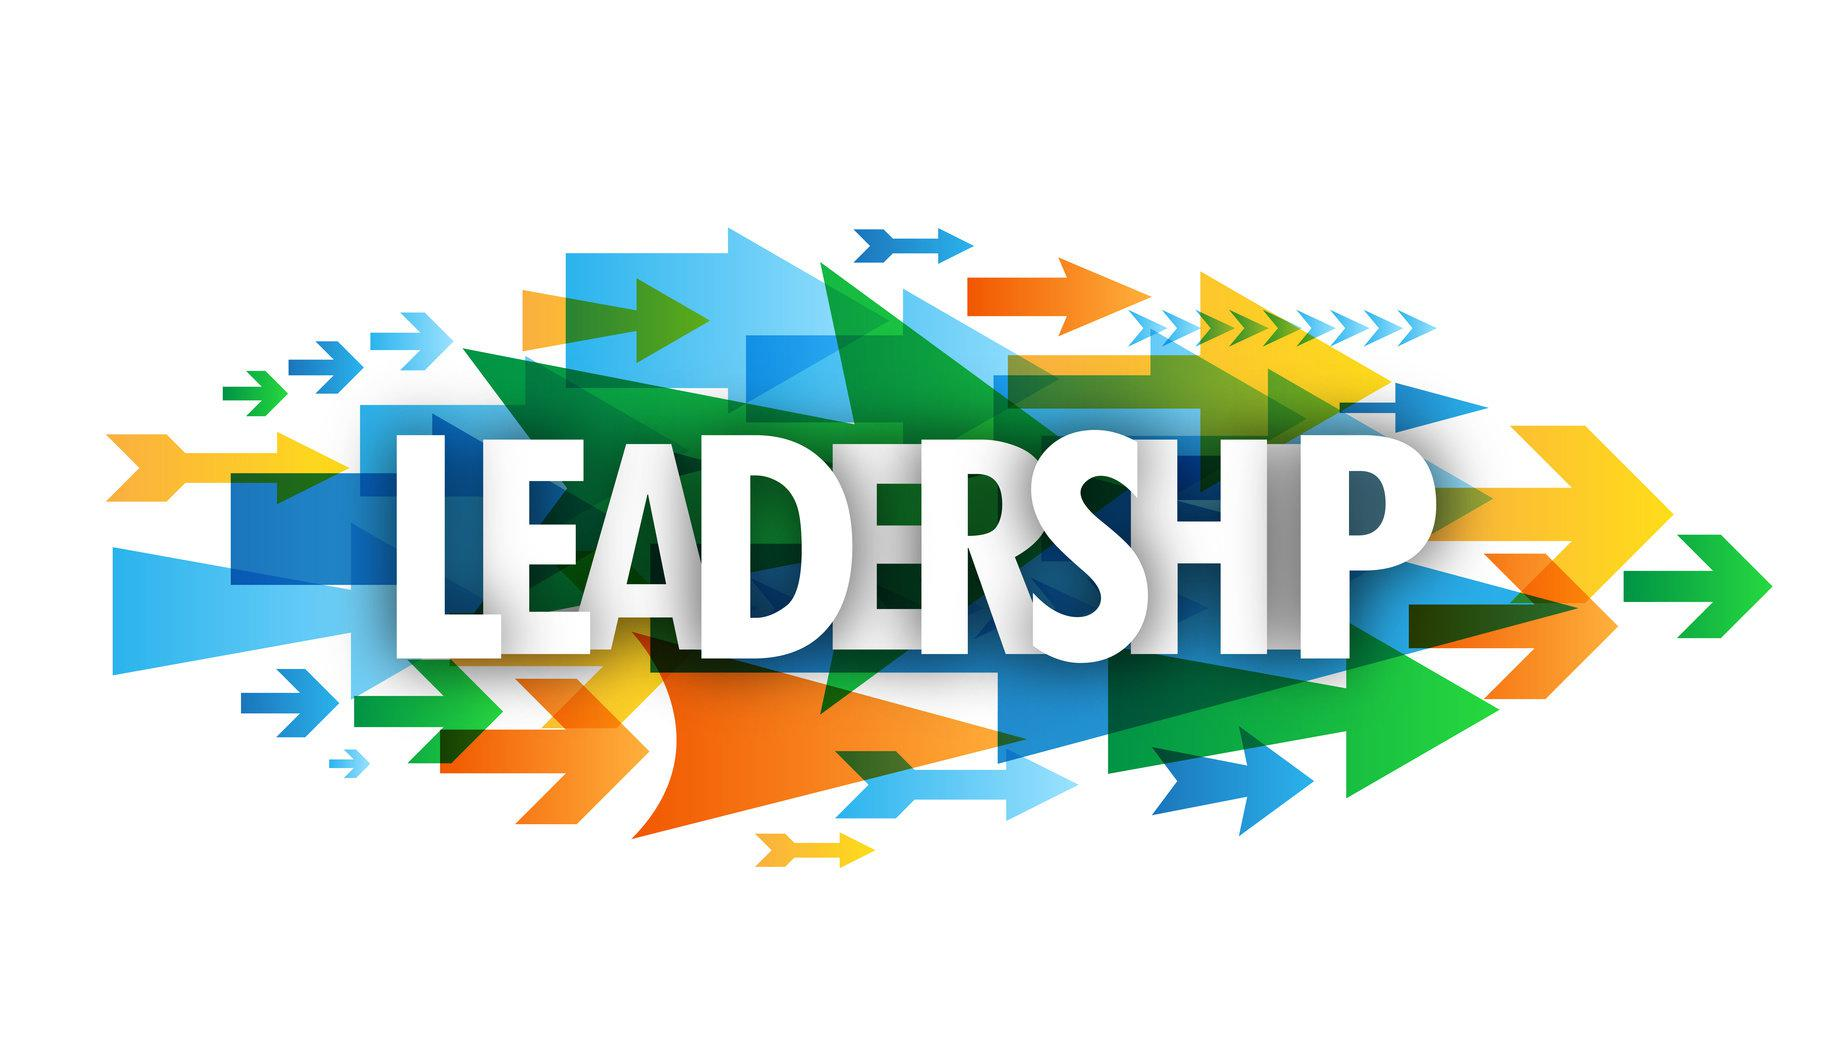 """LEADERSHIP"" overlapping vector letters icon with arrows background"